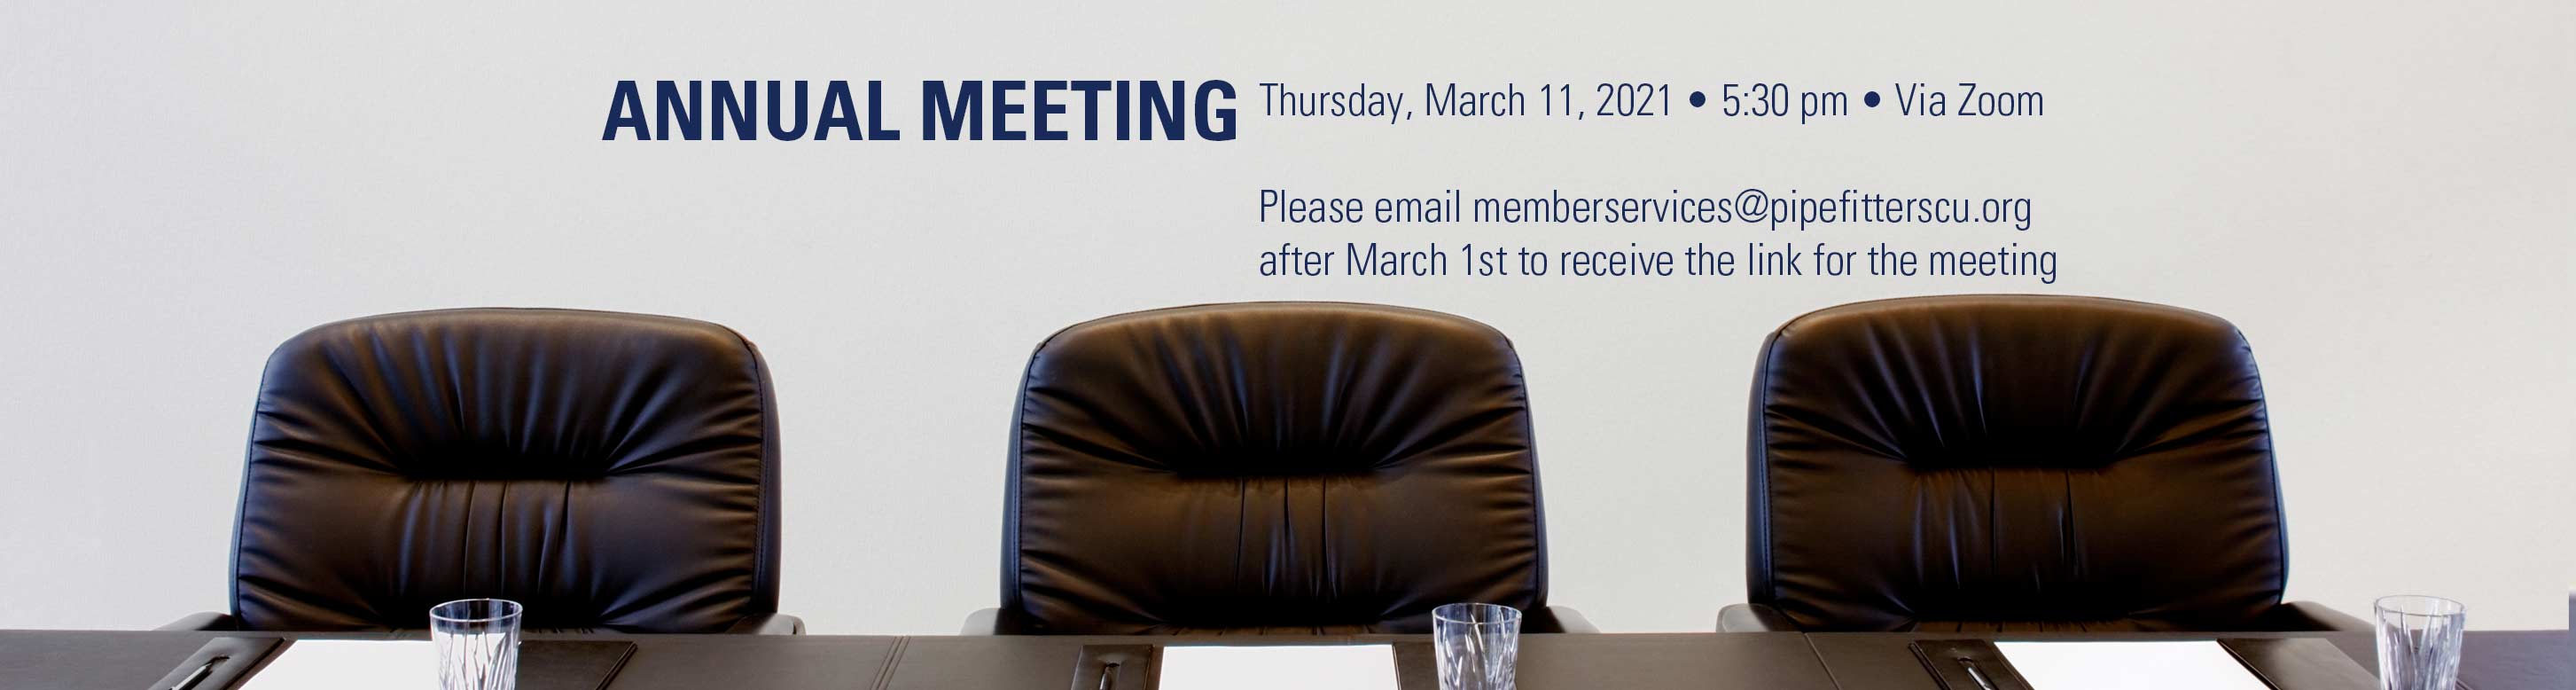 Annual Meeting Thursday March 11, 2021 at 5:30pm Via Zoom. Please email memberservices@pipefitterscu.org after March 1st to receive the link for the meeting